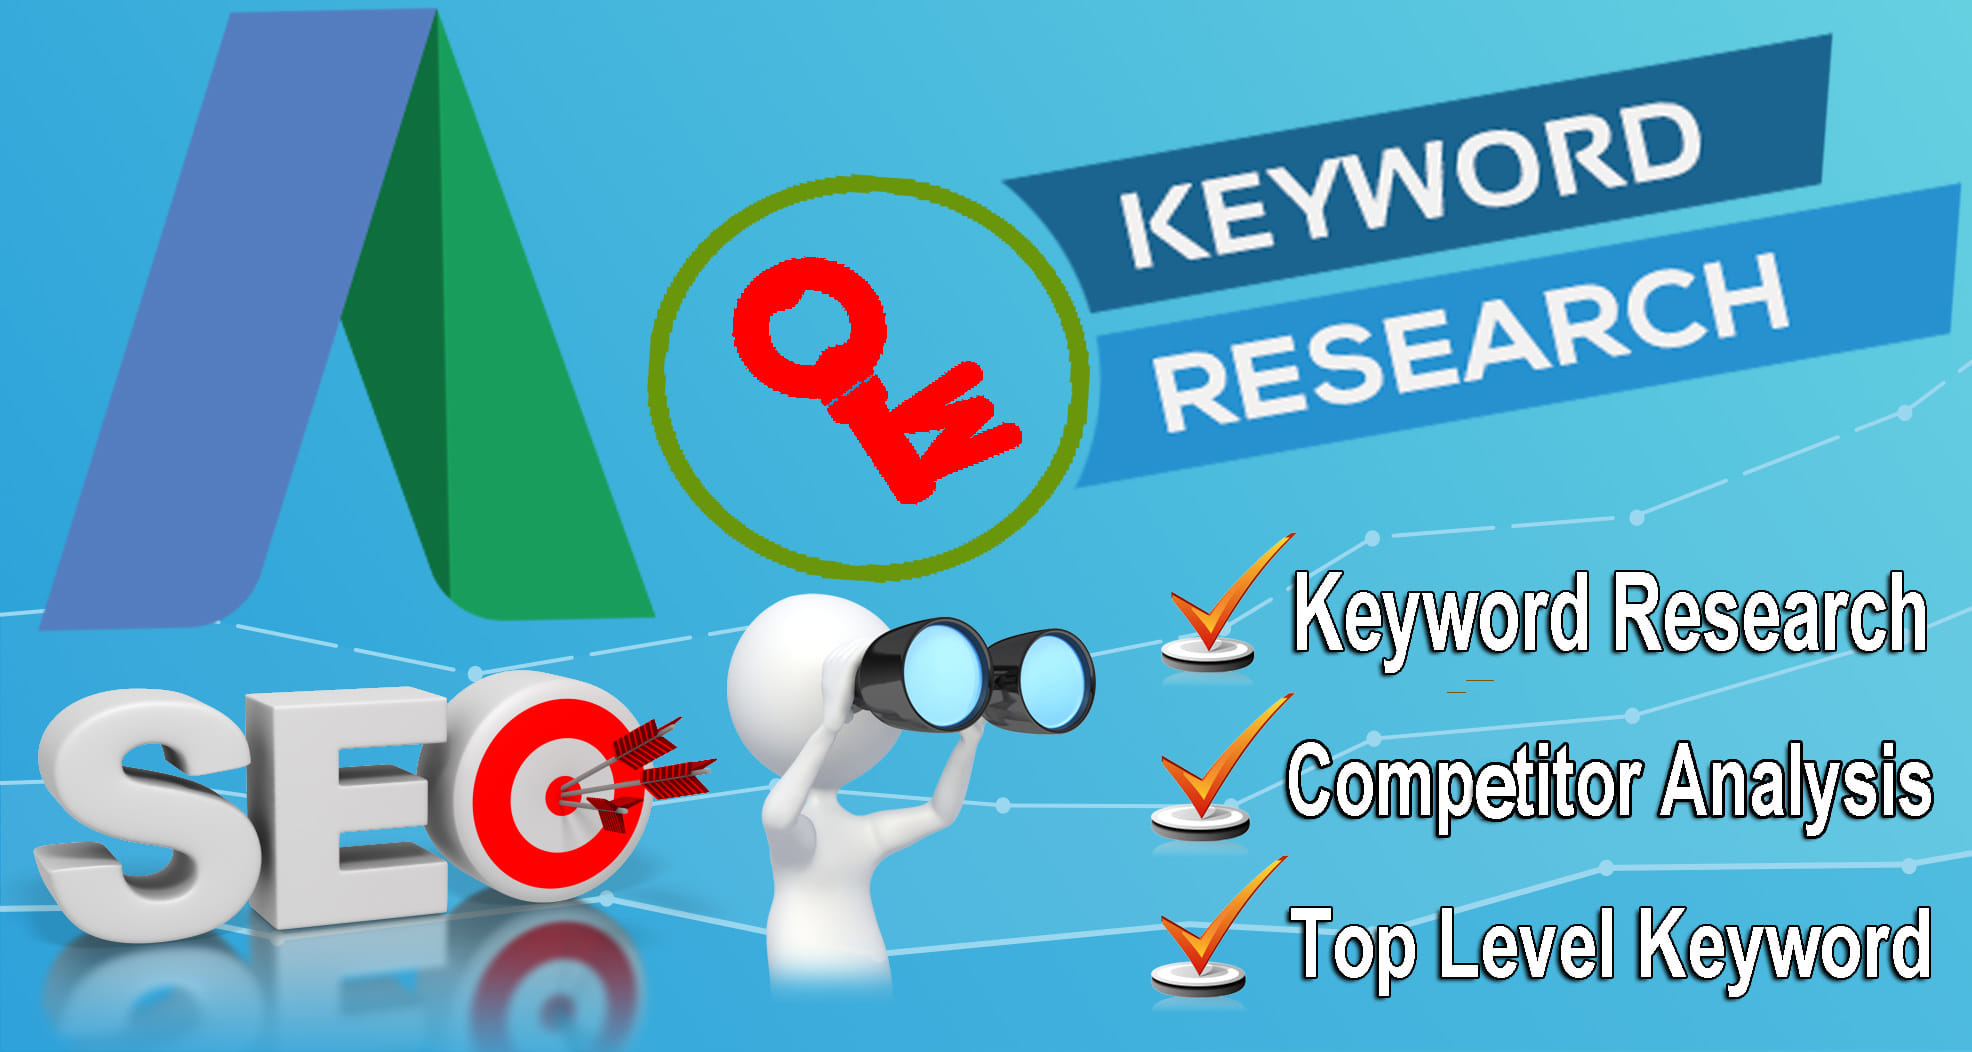 Keyword Research With Competitor Analysis